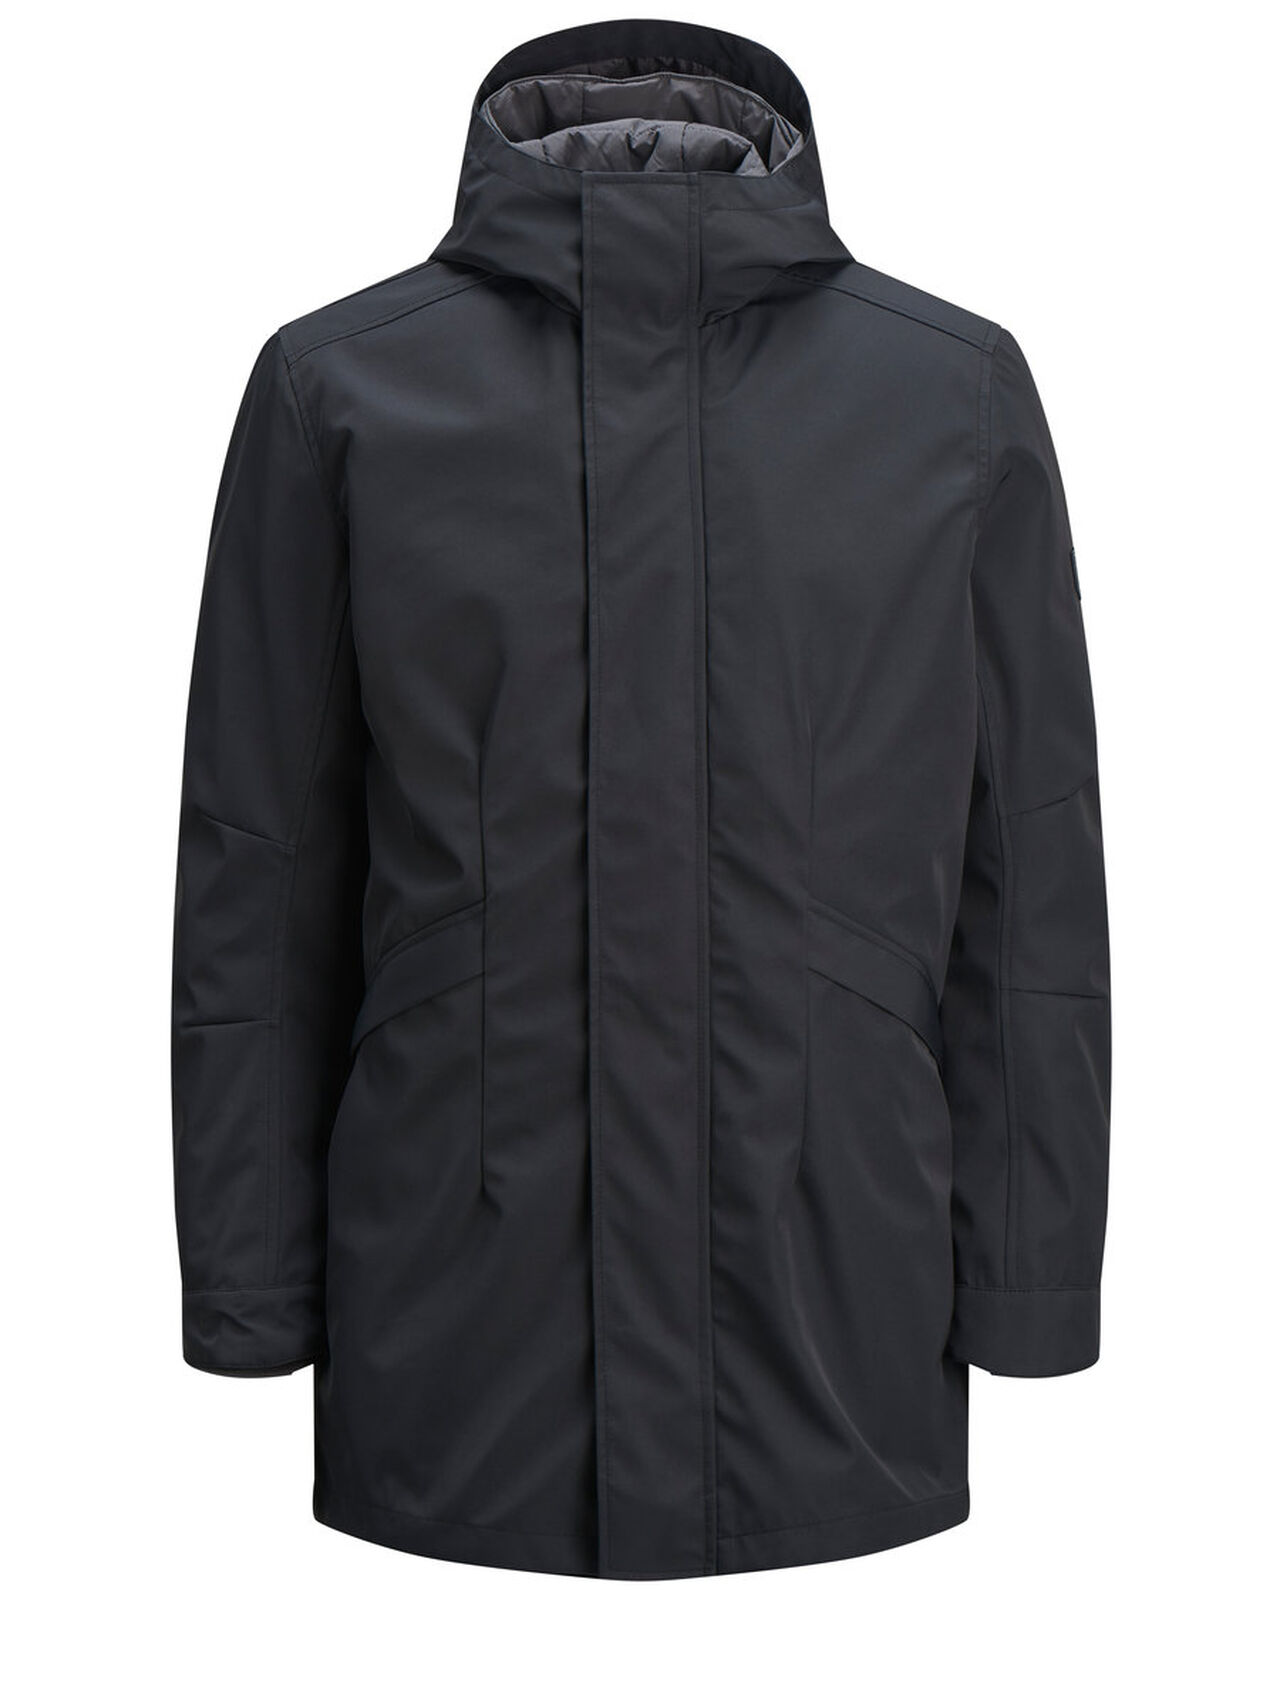 Image of JACK & JONES 2-i-1 Parka Mænd Sort (22698845255)